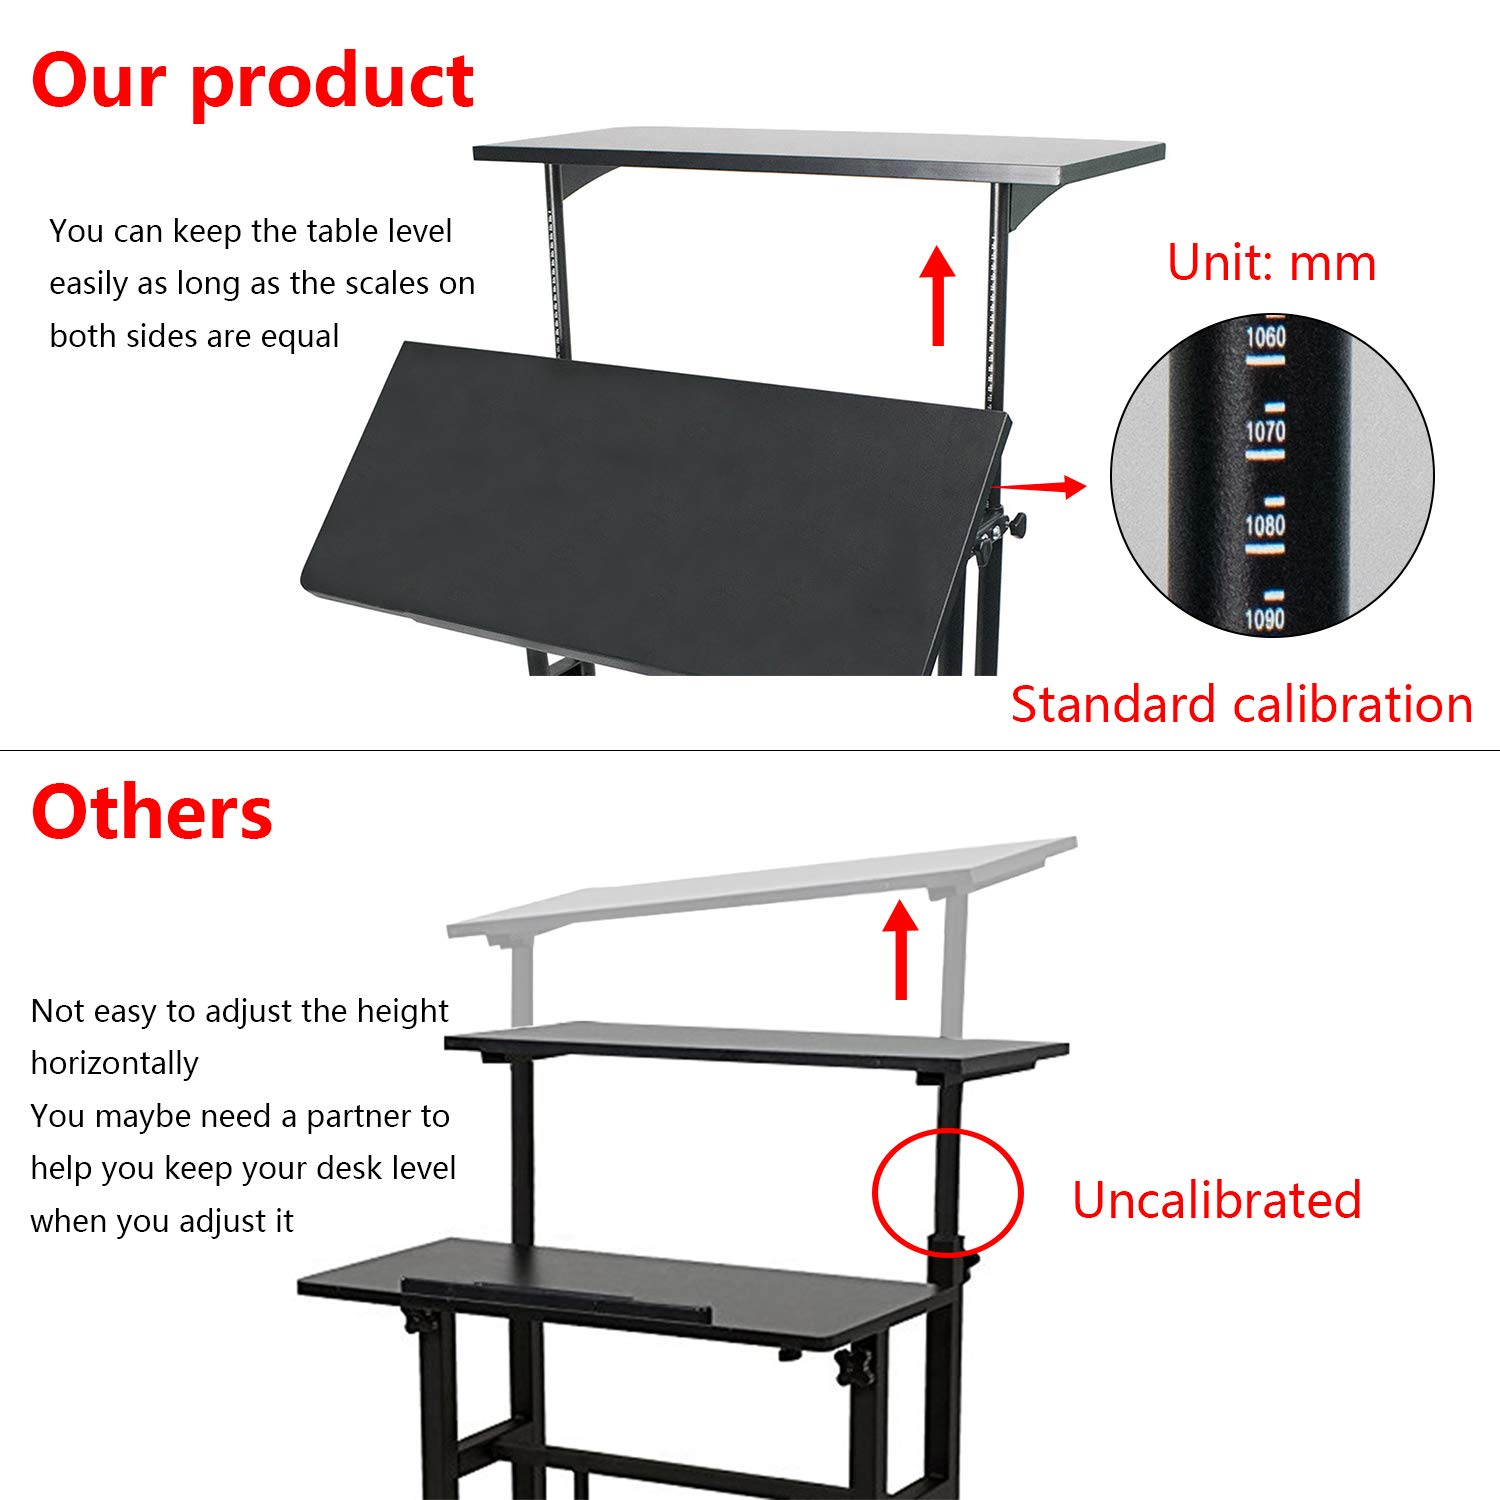 Heyesk Stand Up Desk Height Adjustable Home Office Desk with Standing (Black) by heyesk (Image #3)